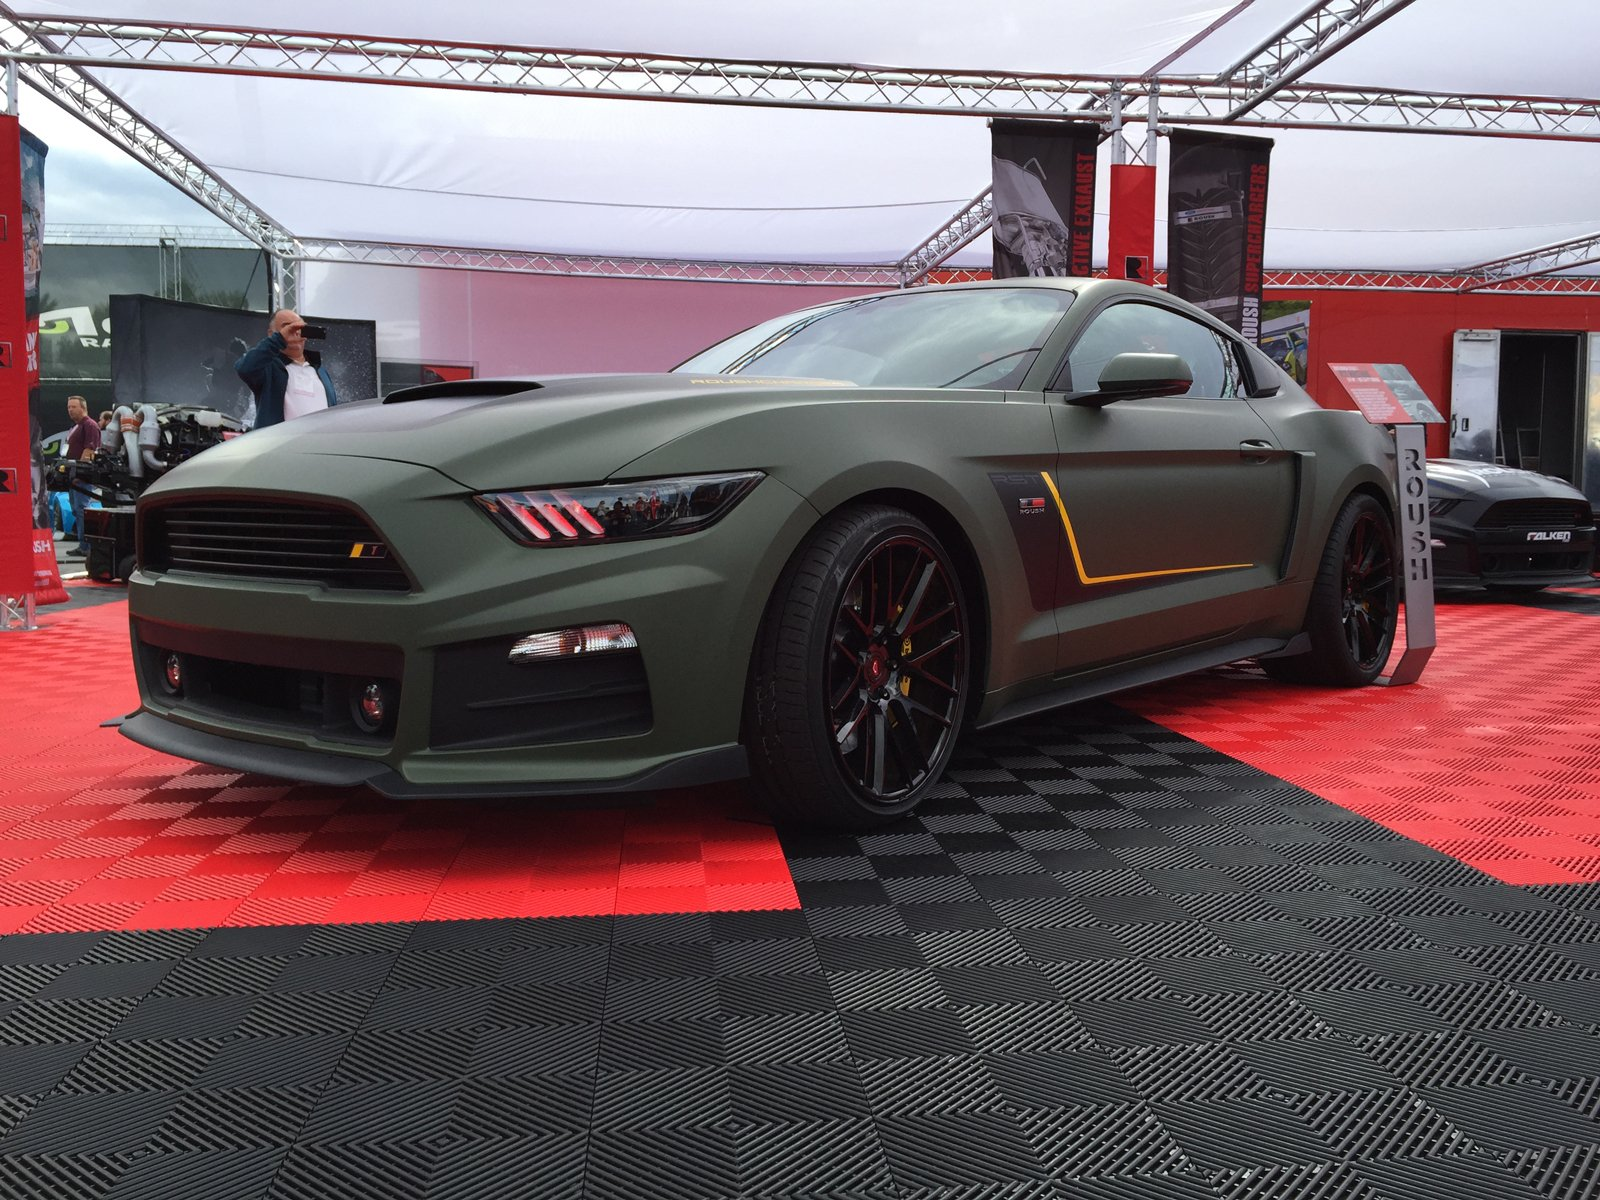 2016 Roush Stage 1 EcoBoost RST Mustang - AllFordMustangs